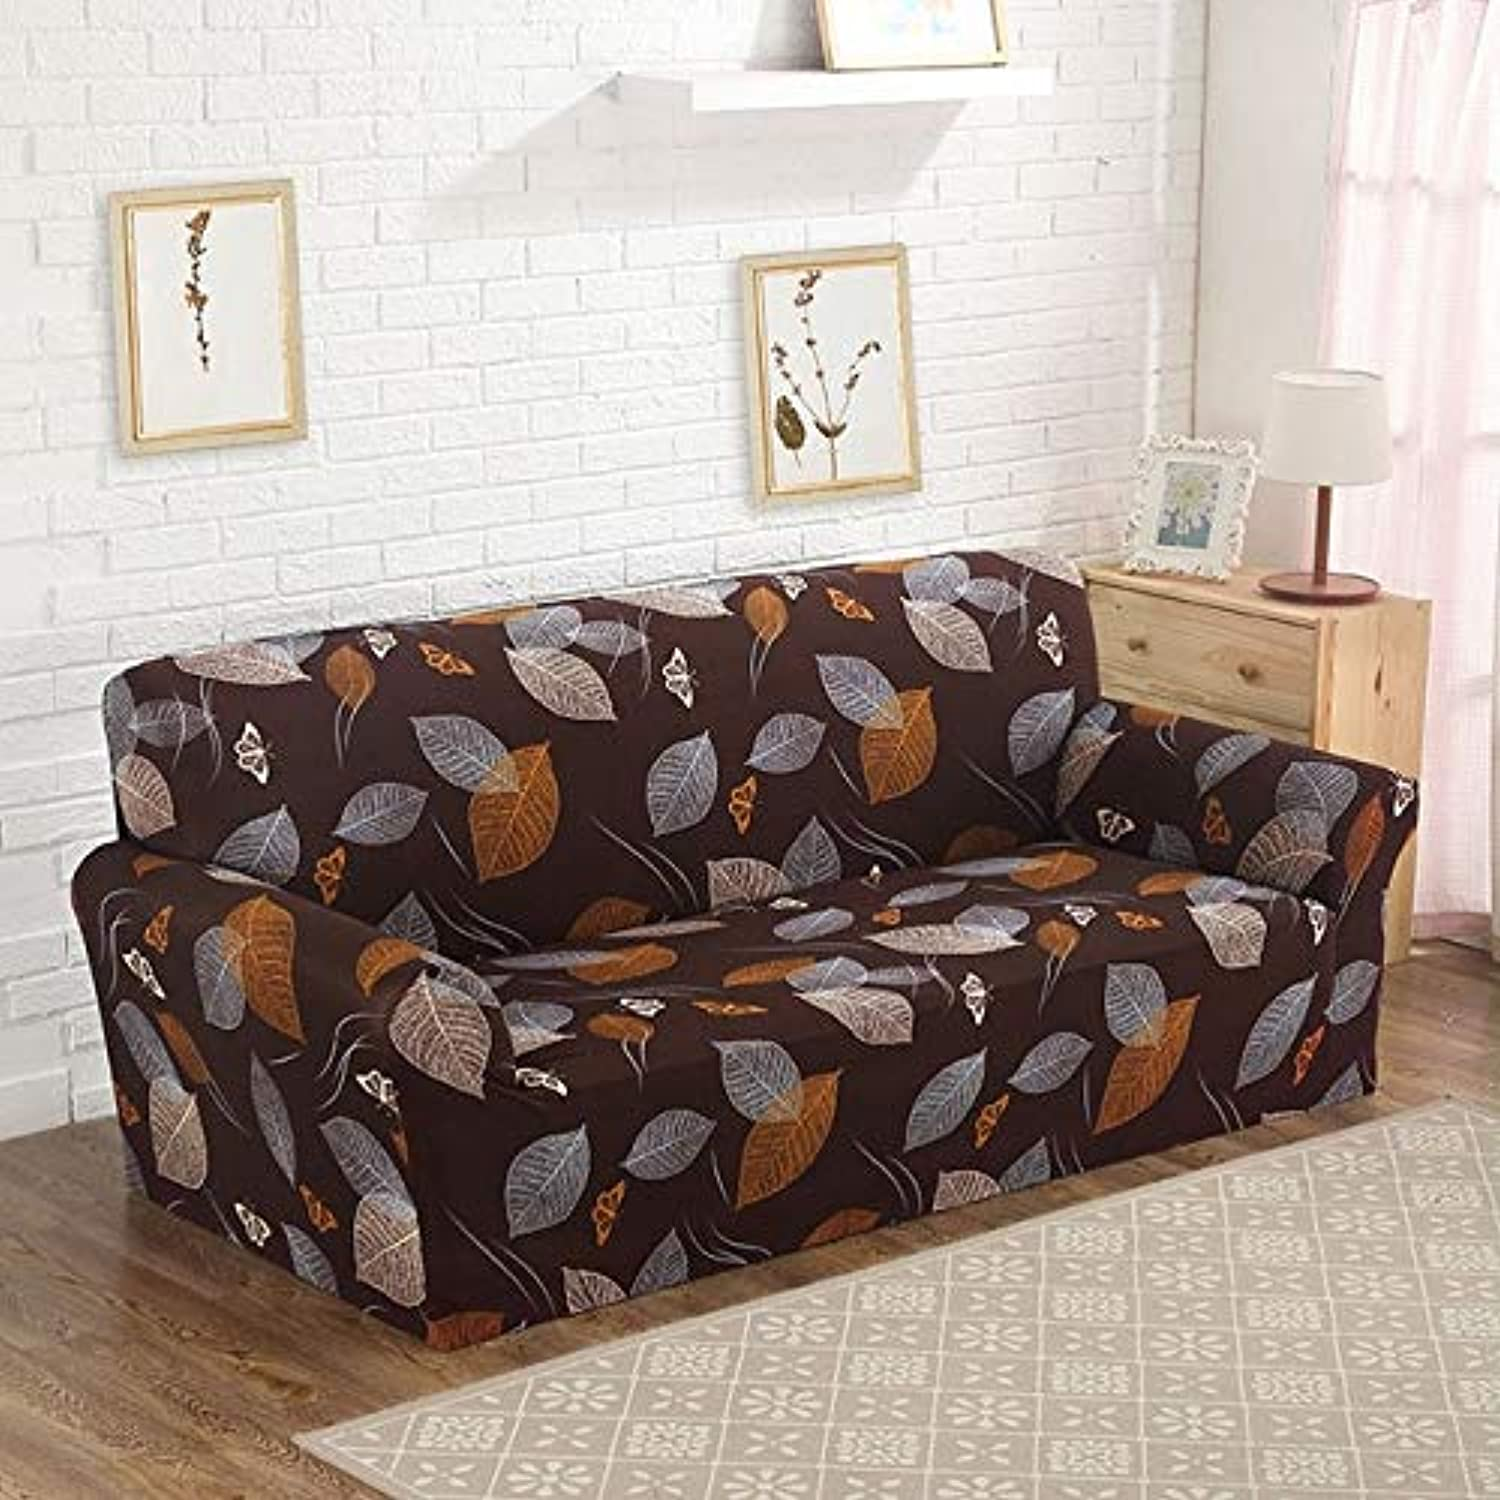 Farmerly Floral Printed Sofa Cover Slipcover for Living Room Elastic Congreens Cover Tight All-Inclusive Lace Edge Pattern 1 2 3 4-seater   color 22, 2seater 145-185cm